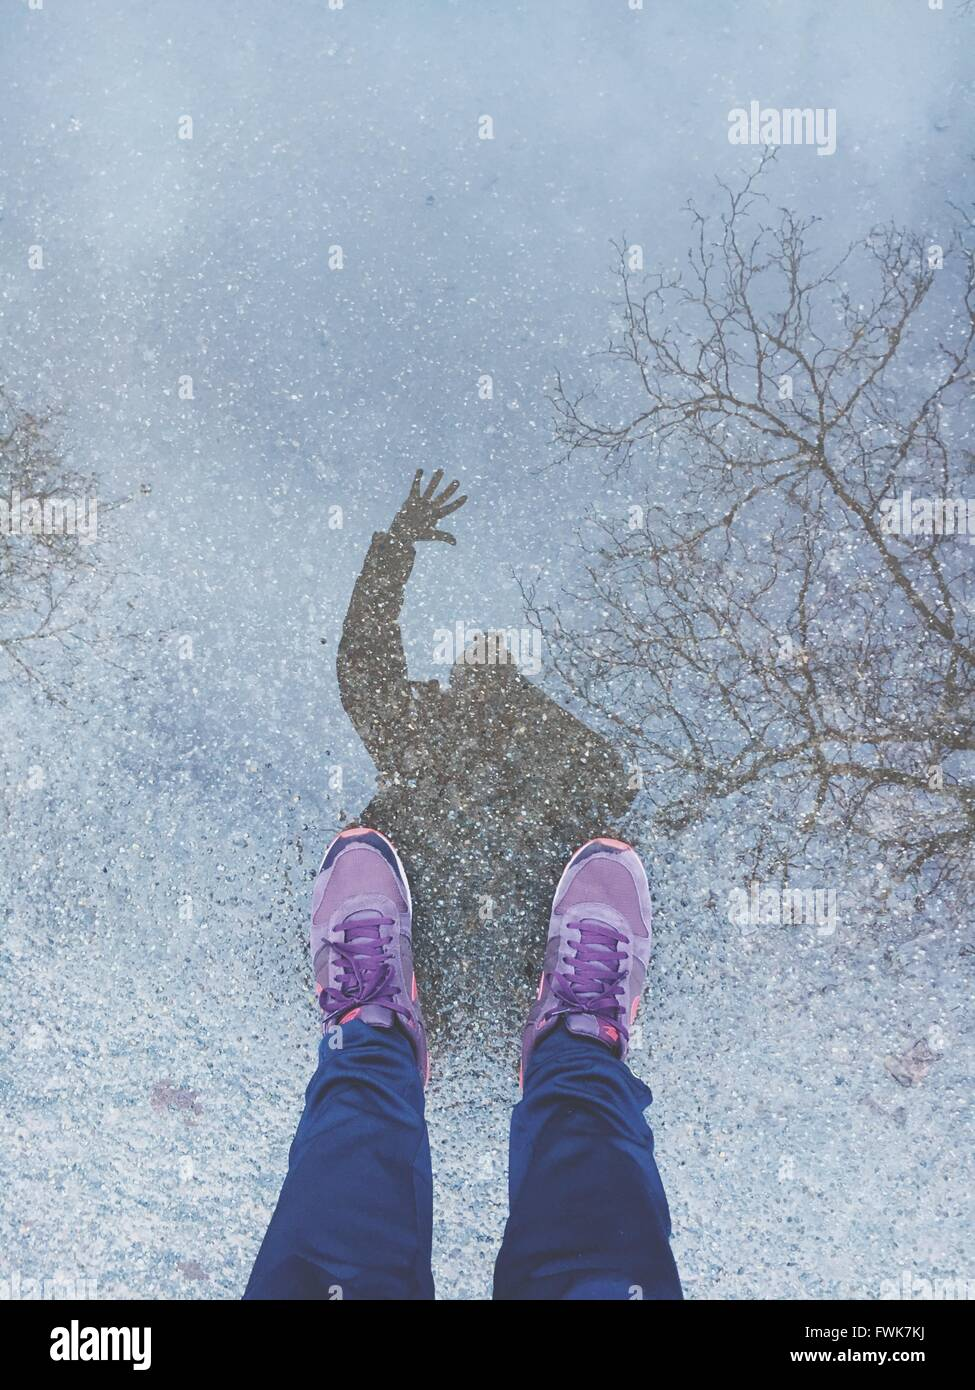 Low Section Of Woman Standing By Puddle - Stock Image